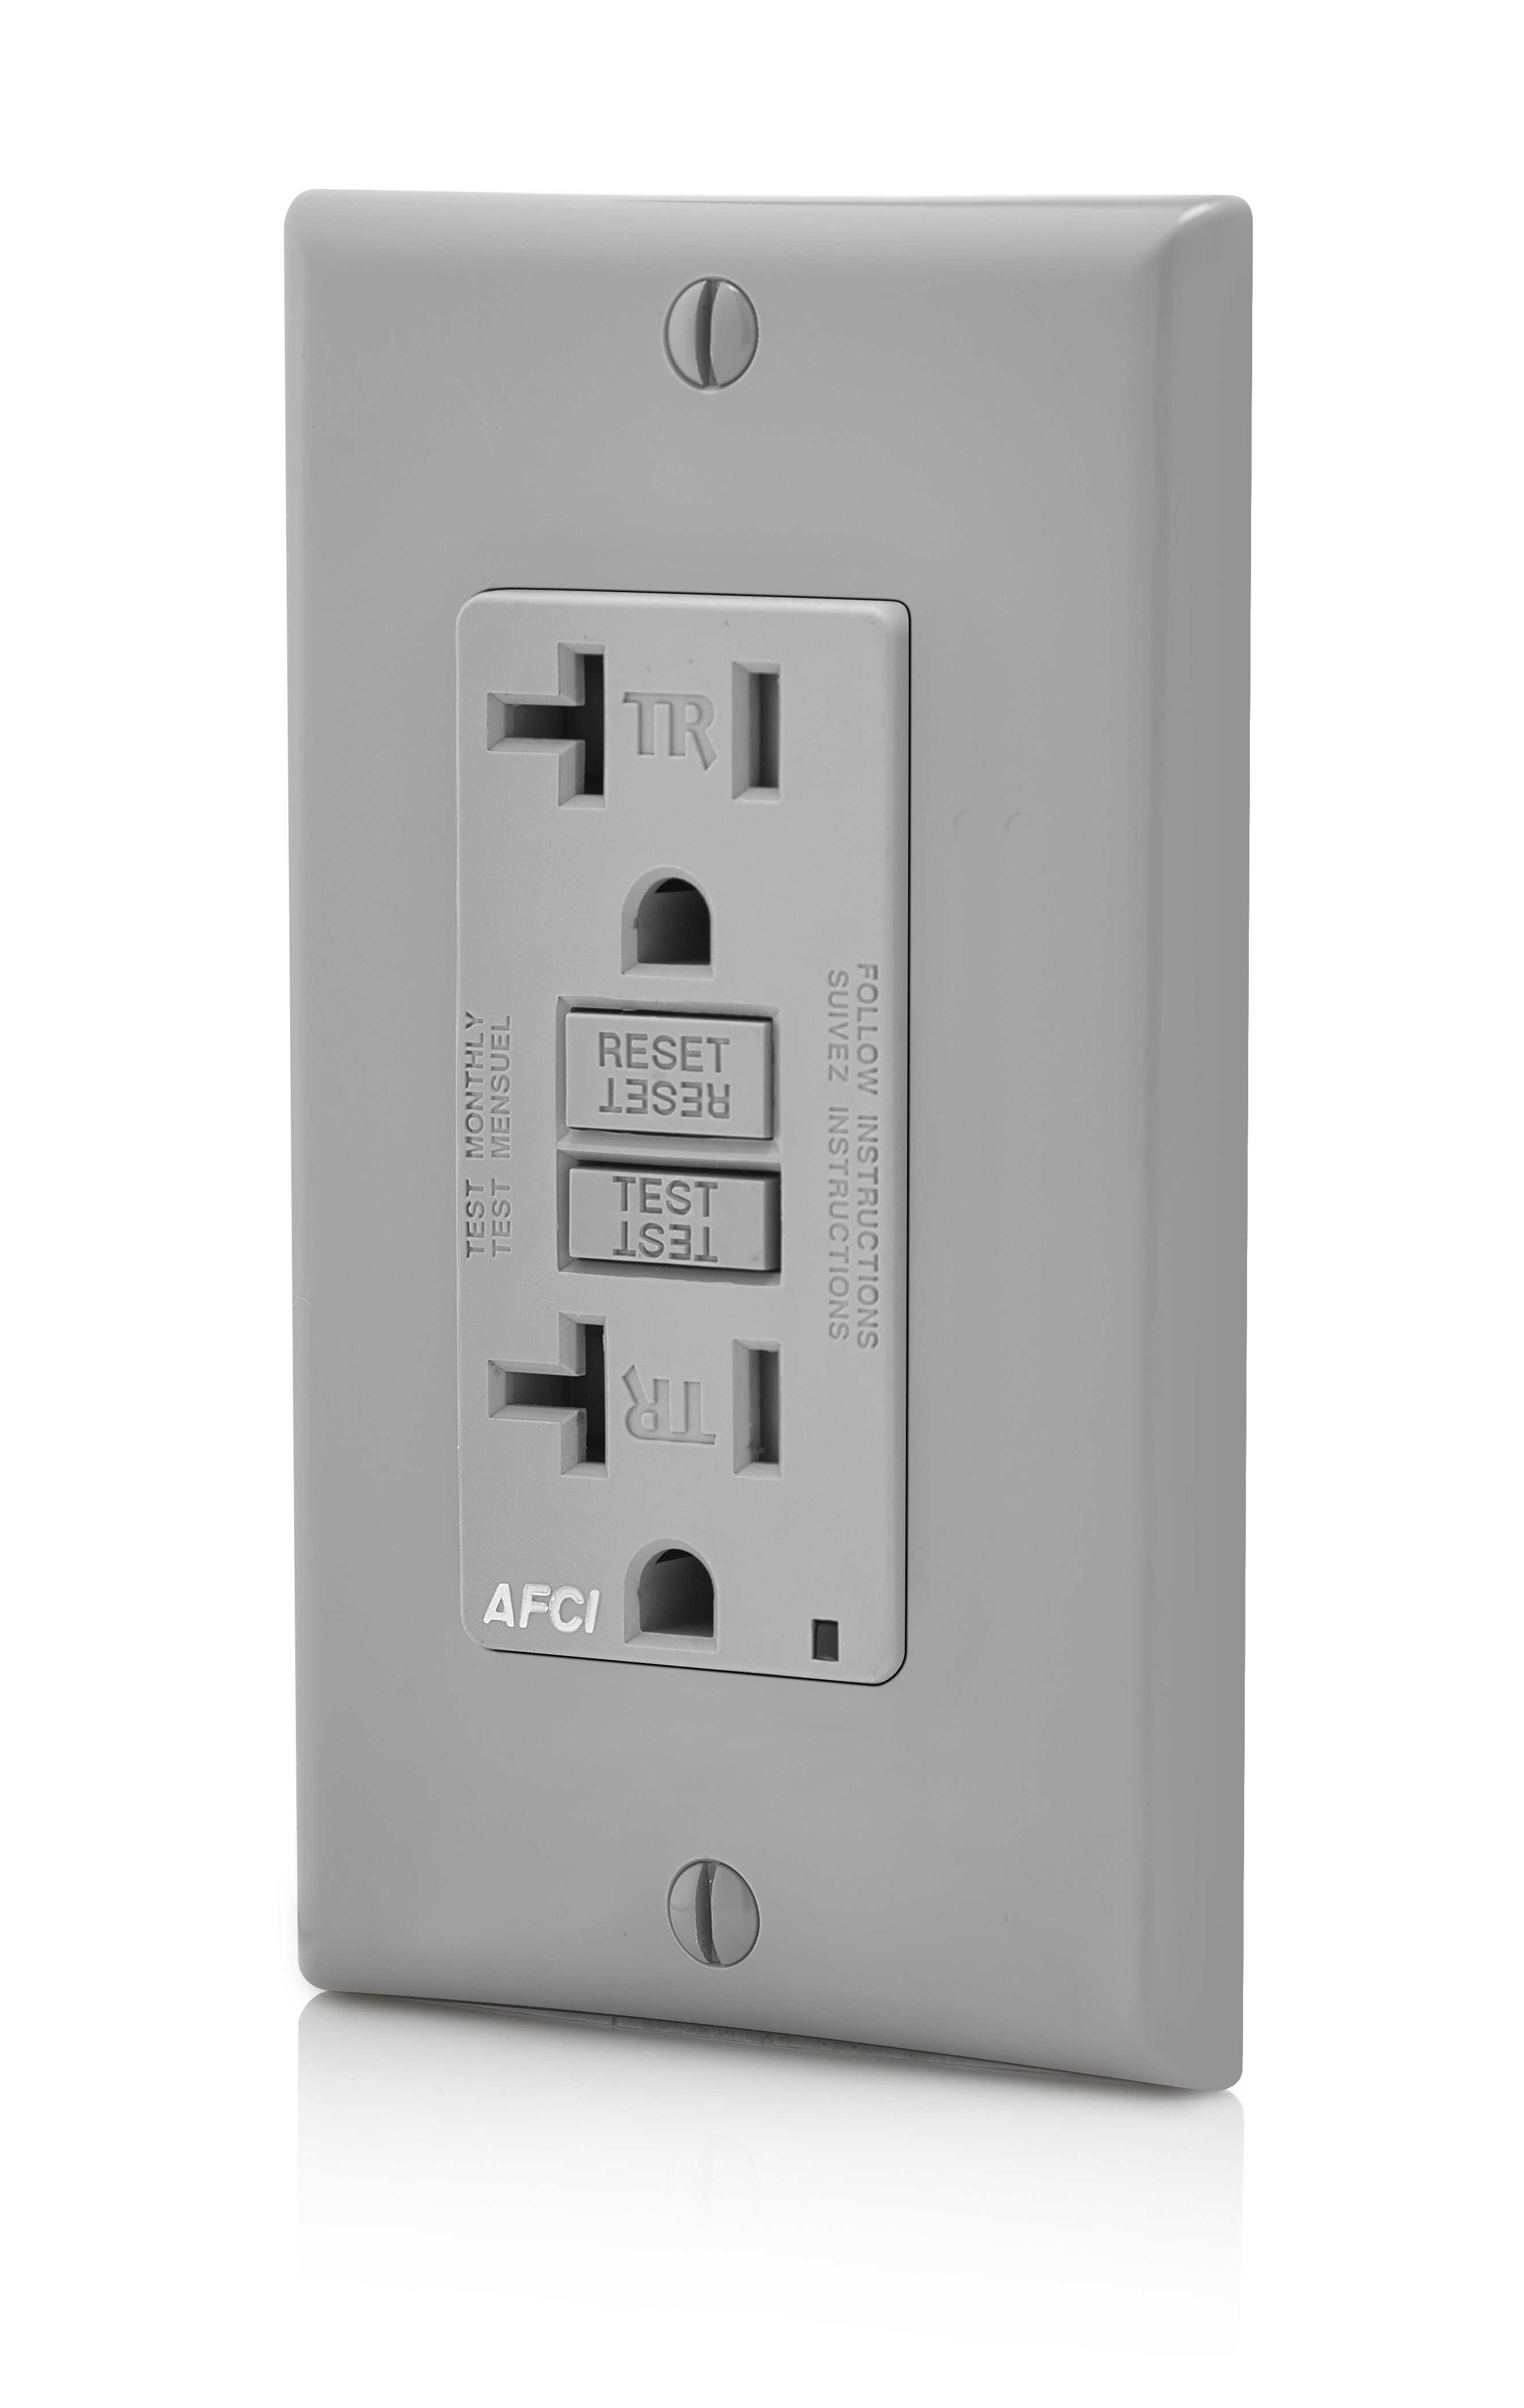 Leviton Aftr2 Gy Smartlockpro Outlet Branch Circuit Arc